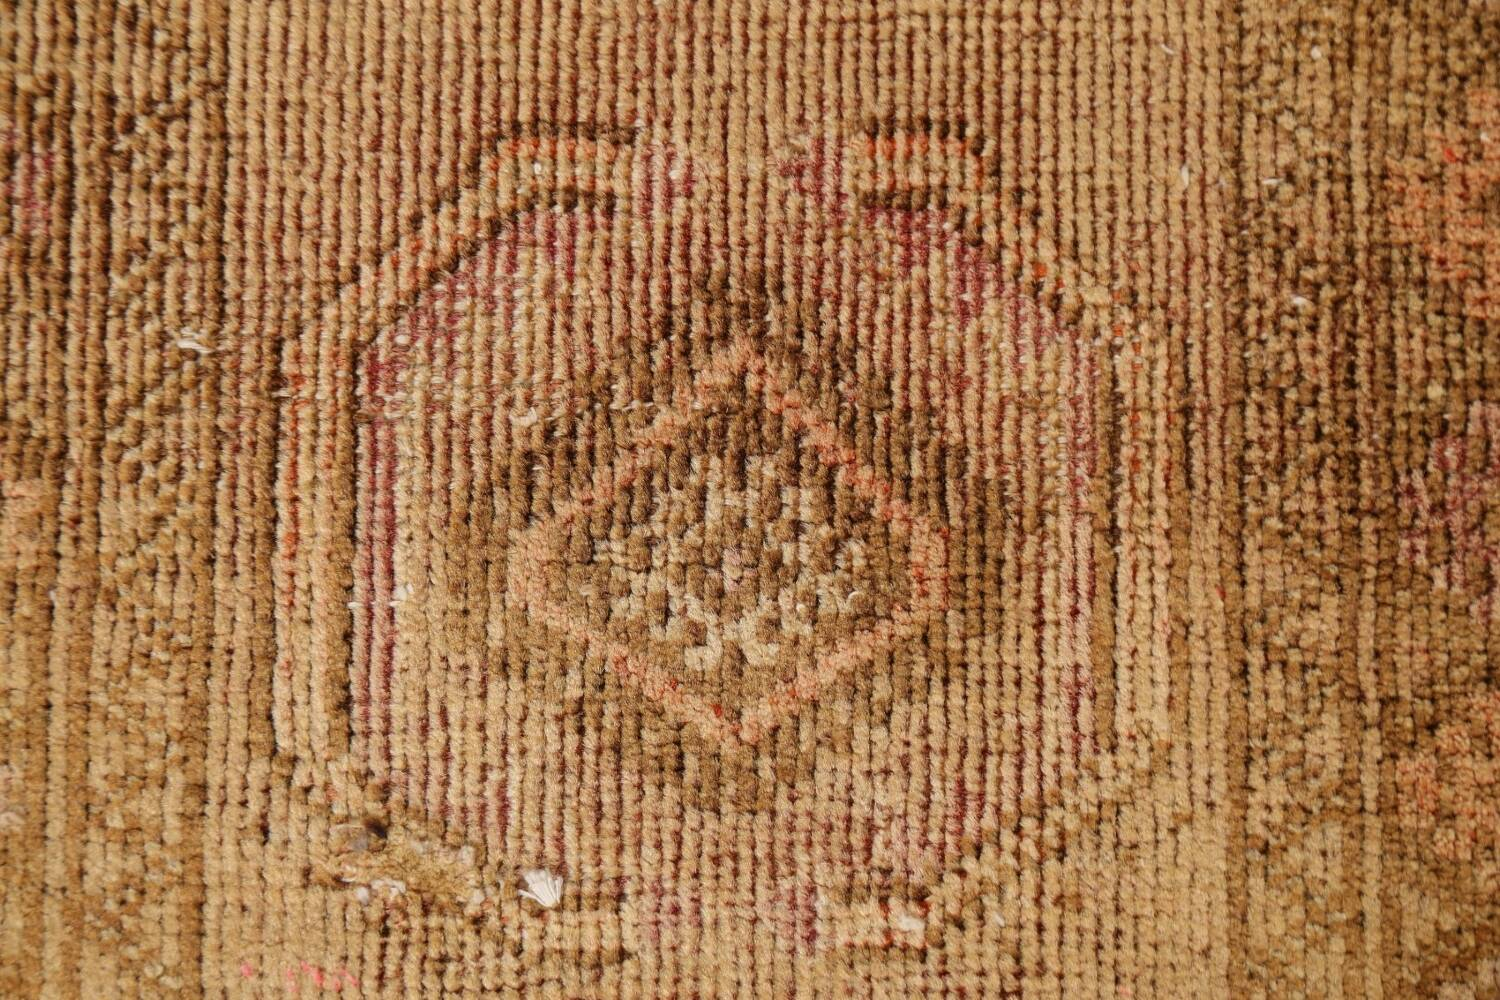 Square Balouch Persian Wool Rug 2x2 image 4